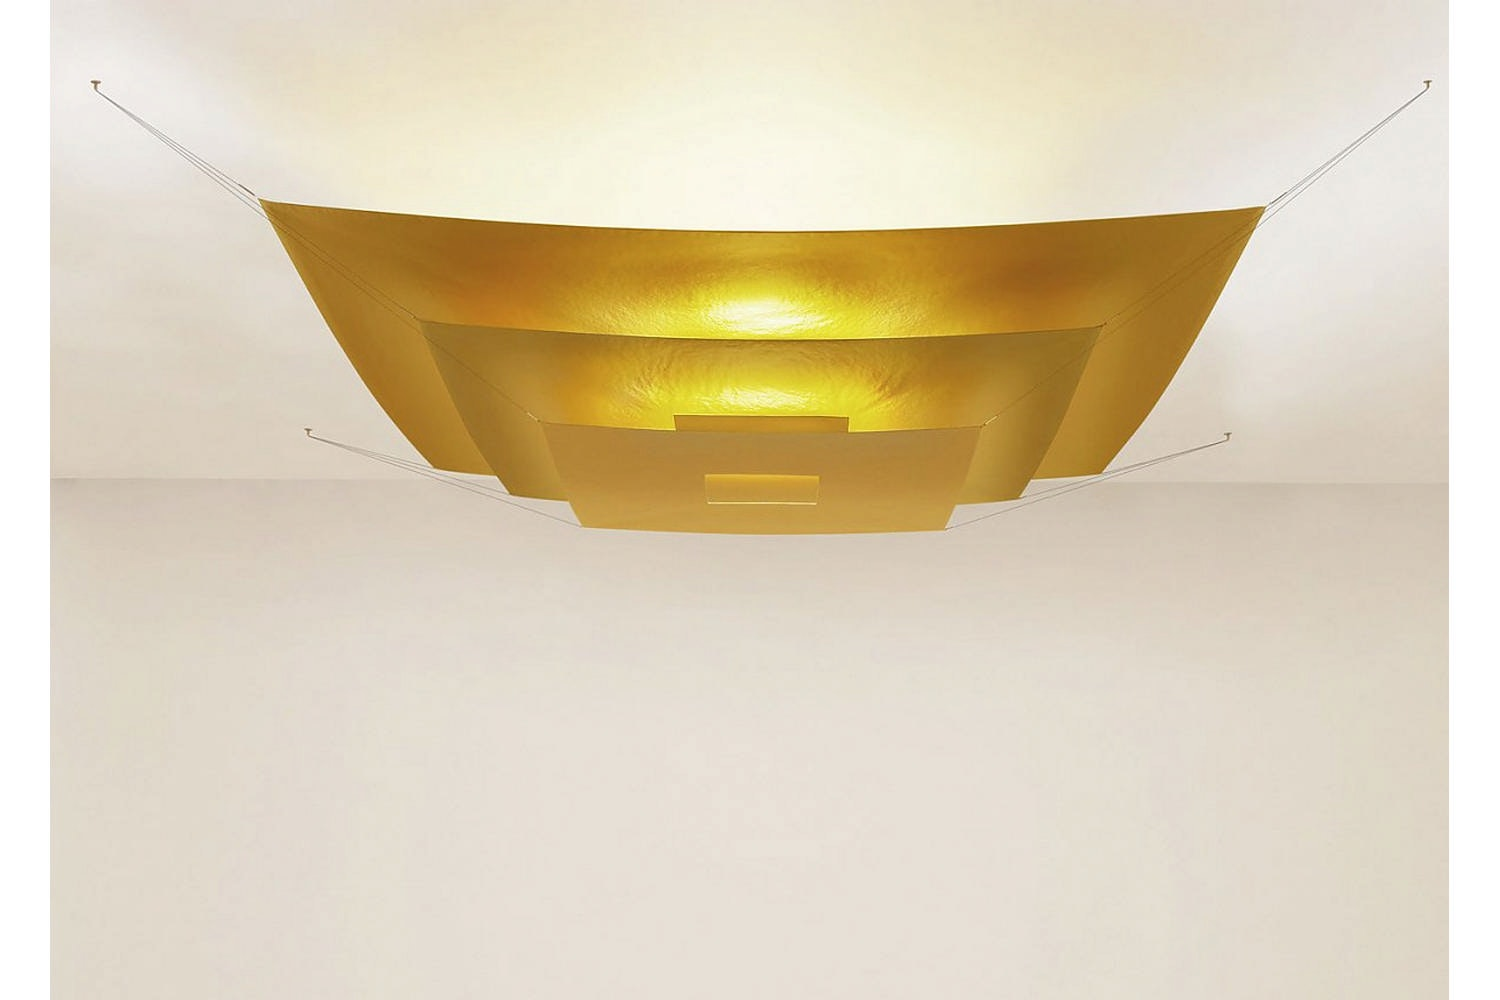 Lil Luxury Suspension Lamp by Ingo Maurer und Team for Ingo Maurer